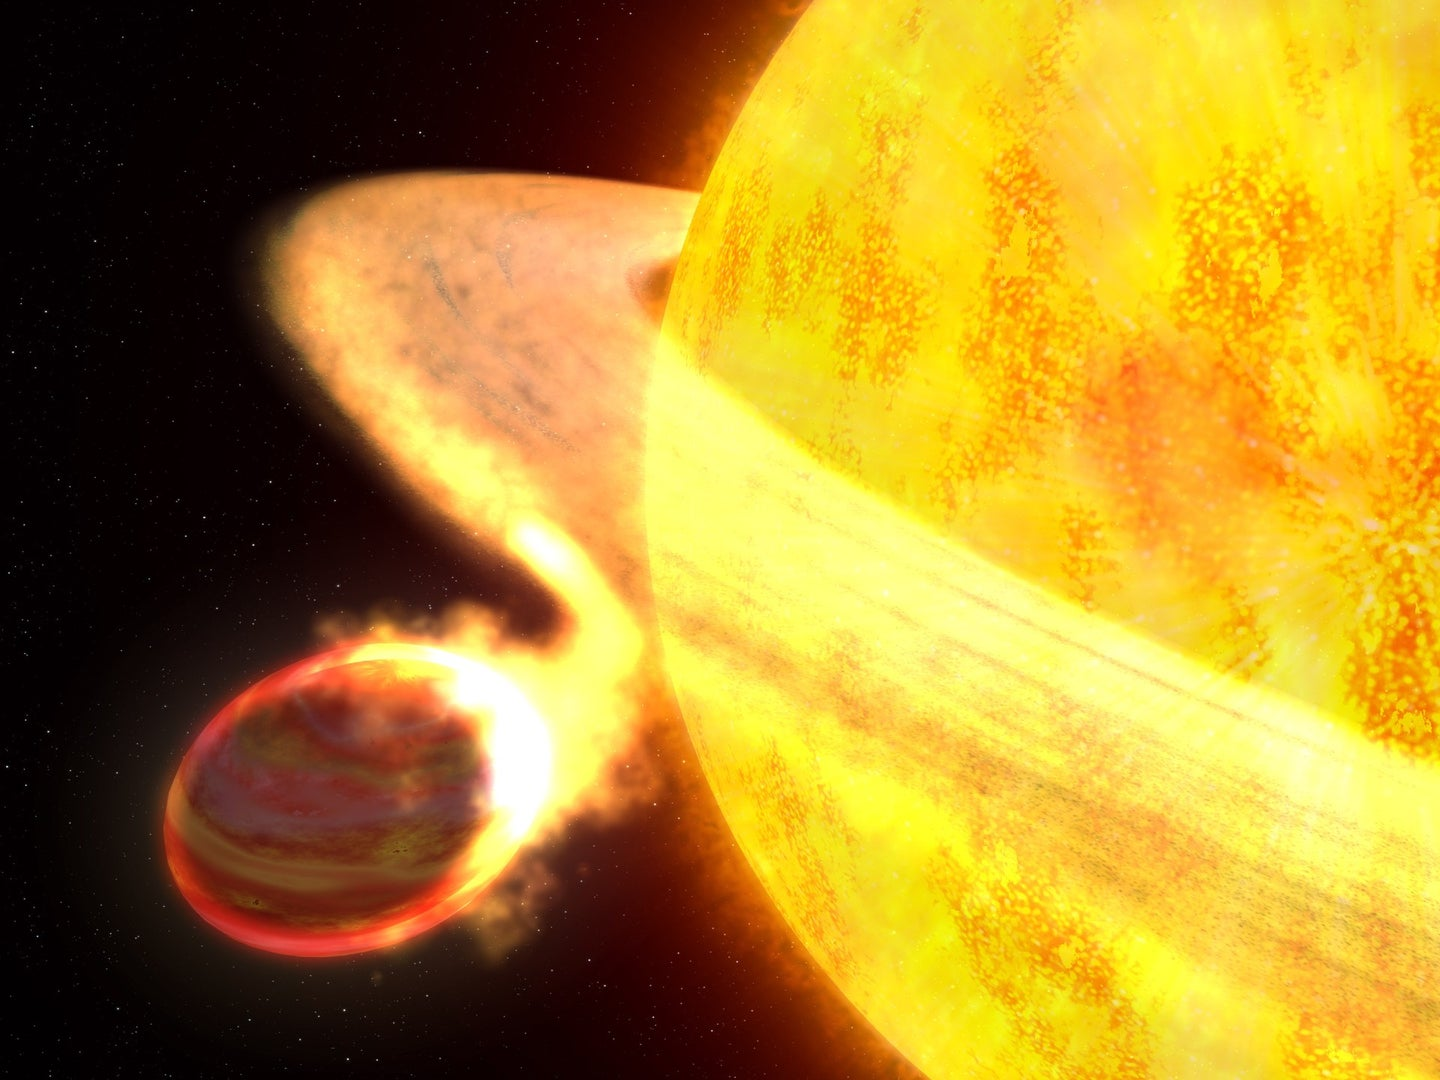 An illustration of a star slowly consuming a planet. The star's gravity has warped the planet into a football-like shape.